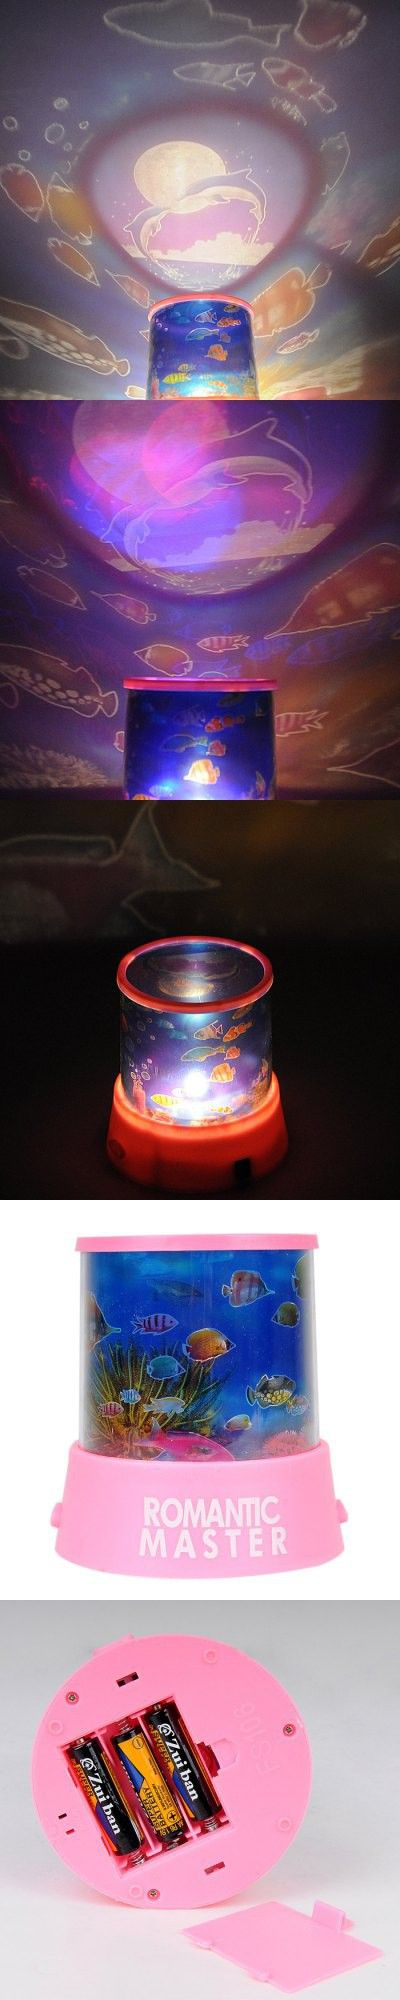 Star map projector lamp - Indoor Lights Led Star Master Projector Lamp With Sea World